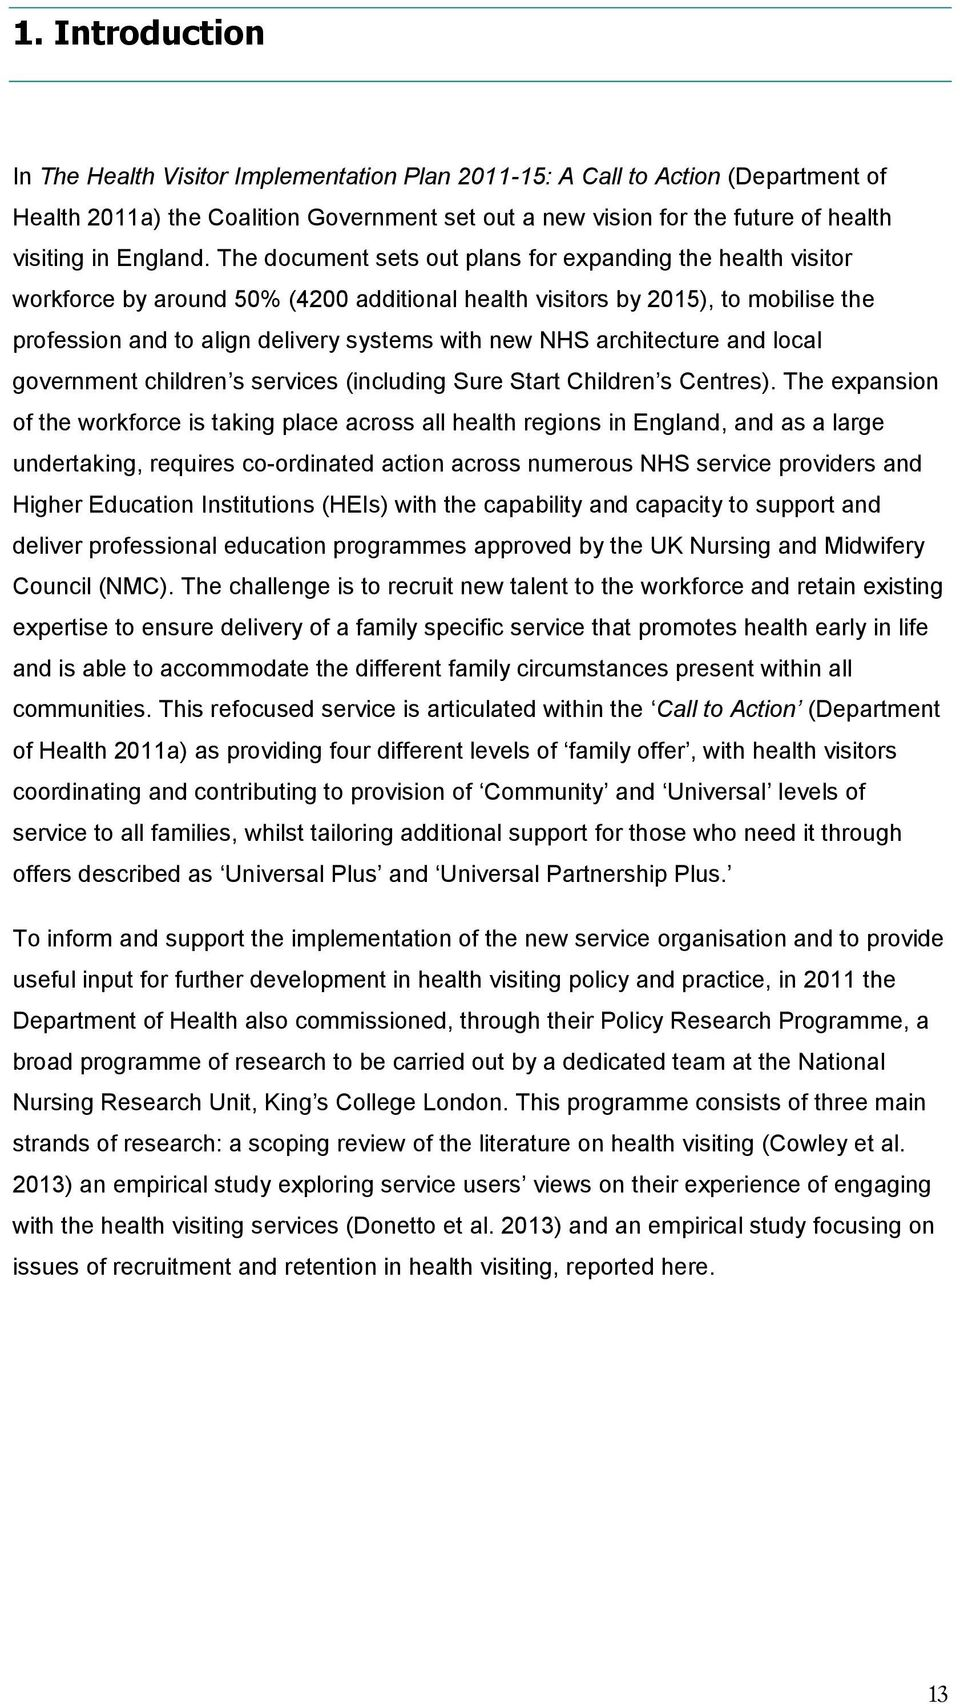 The document sets out plans for expanding the health visitor workforce by around 50% (4200 additional health visitors by 2015), to mobilise the profession and to align delivery systems with new NHS